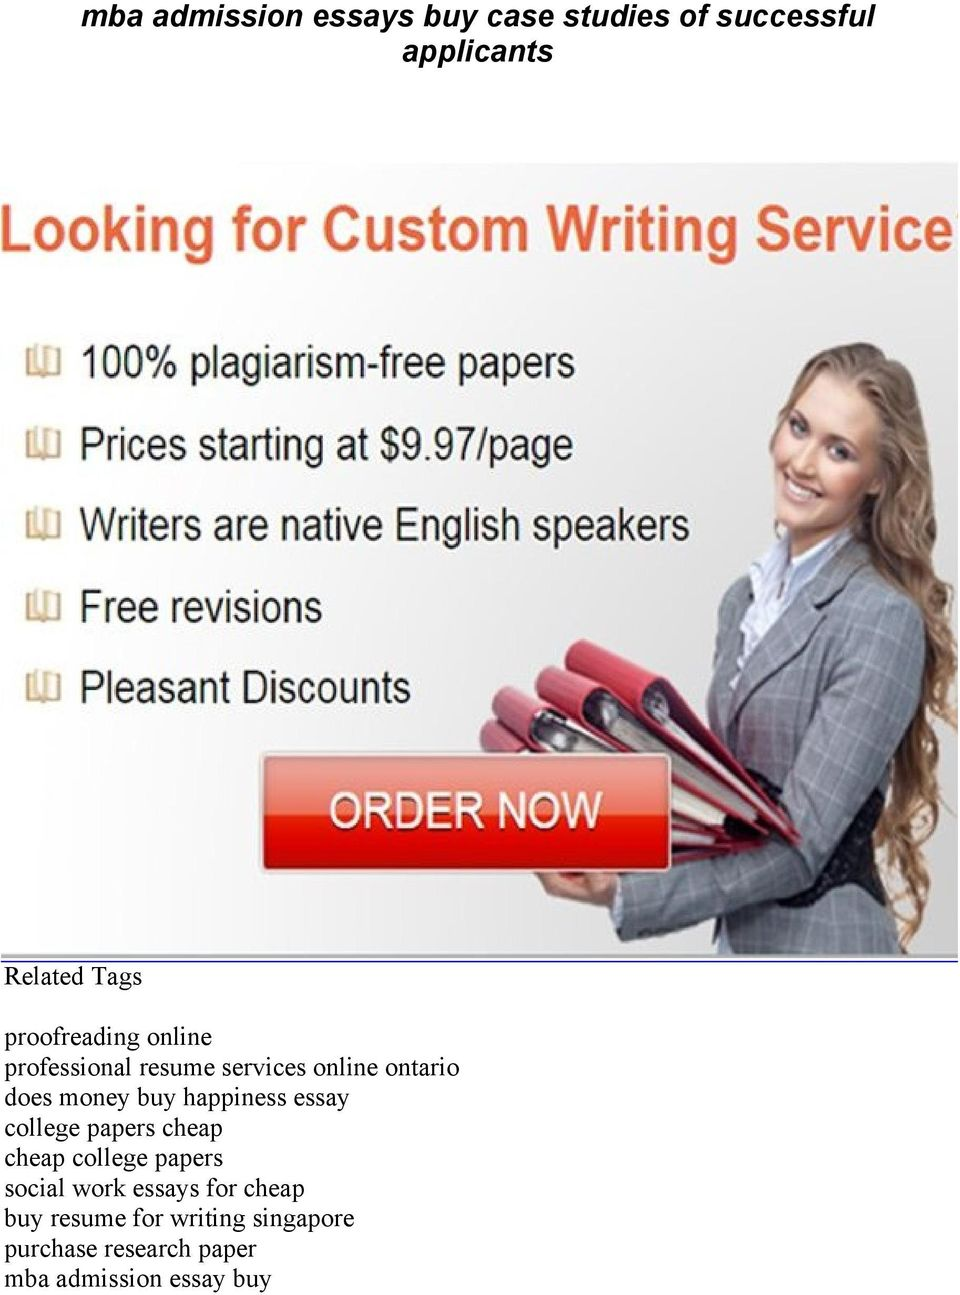 happiness essay college papers cheap cheap college papers social work essays for